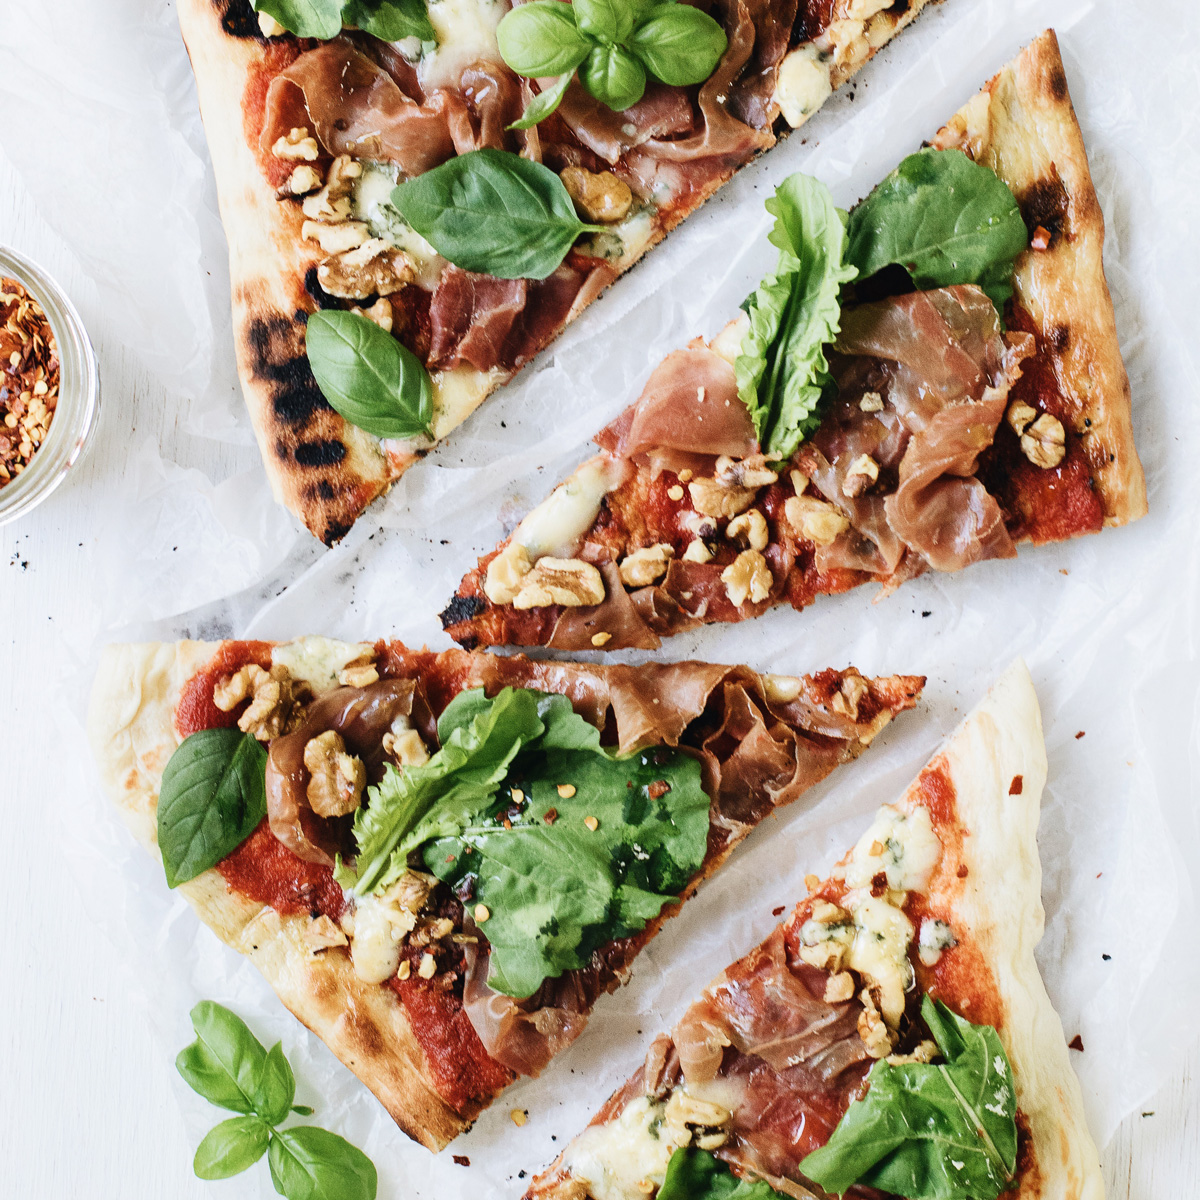 Grilled Pizza with Prosciutto, Blue Cheese and Walnuts